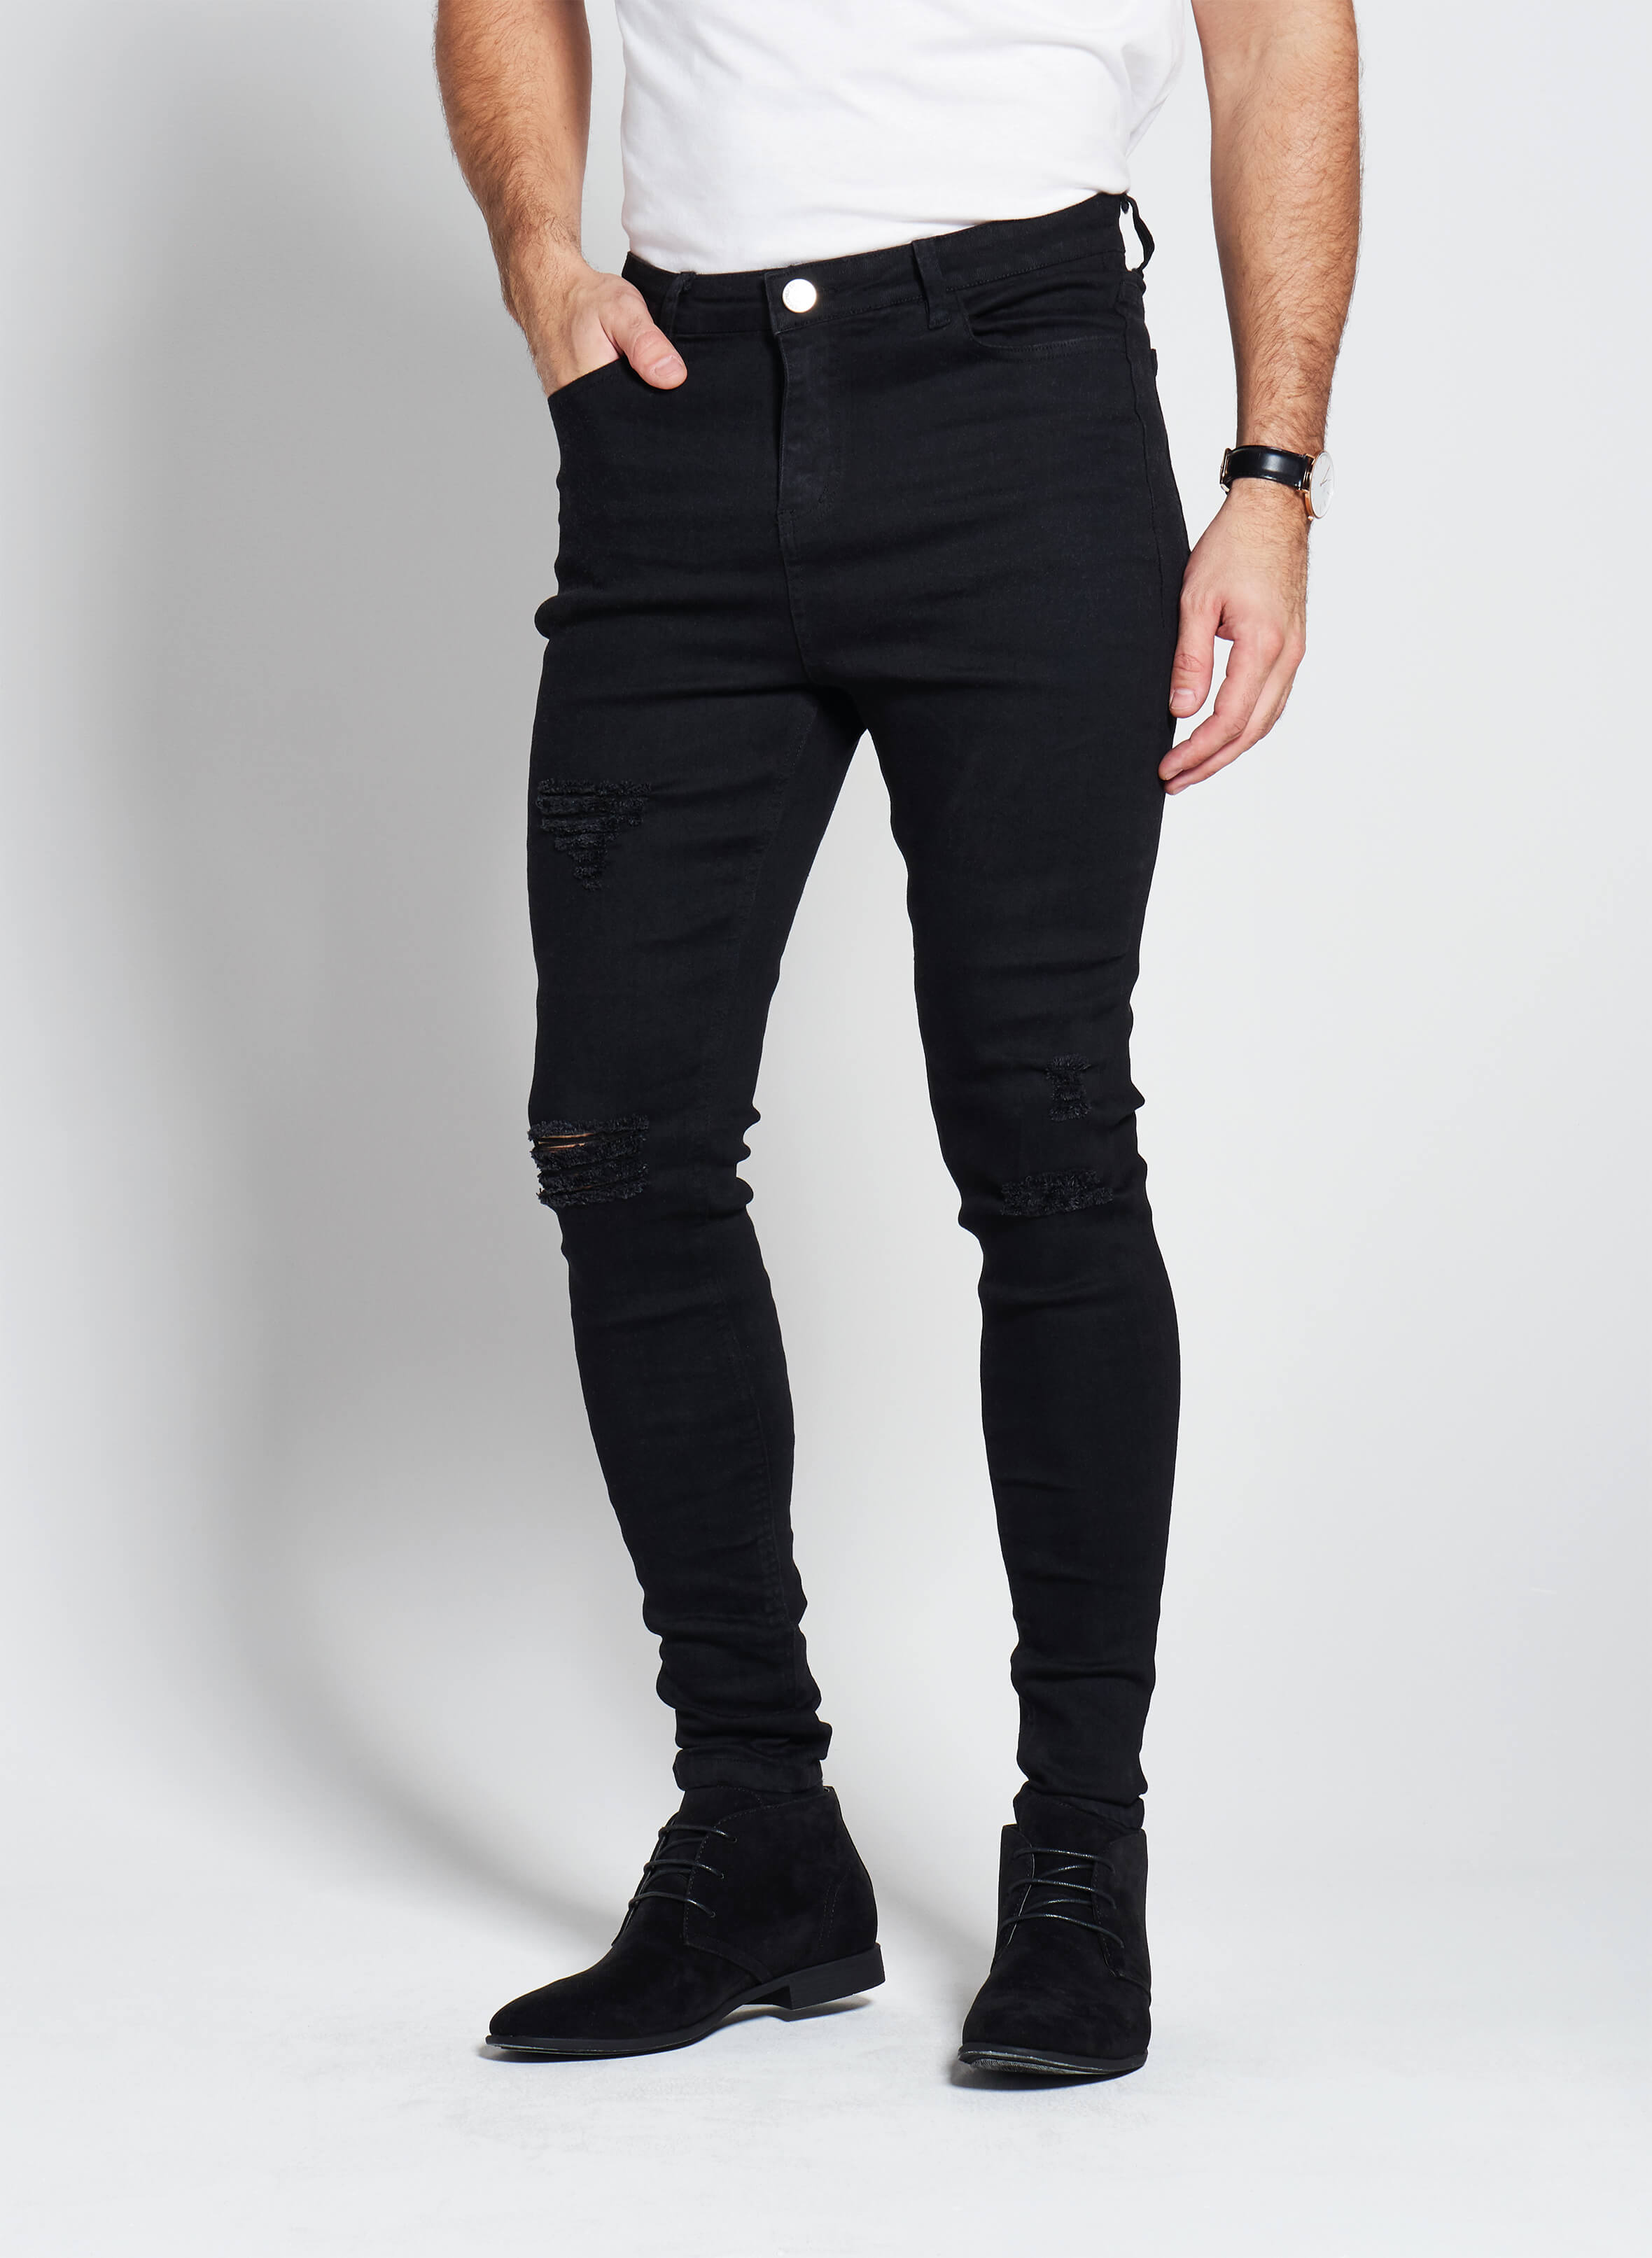 Denim Only® Spray On Jeans - Ripped Black - Spray On